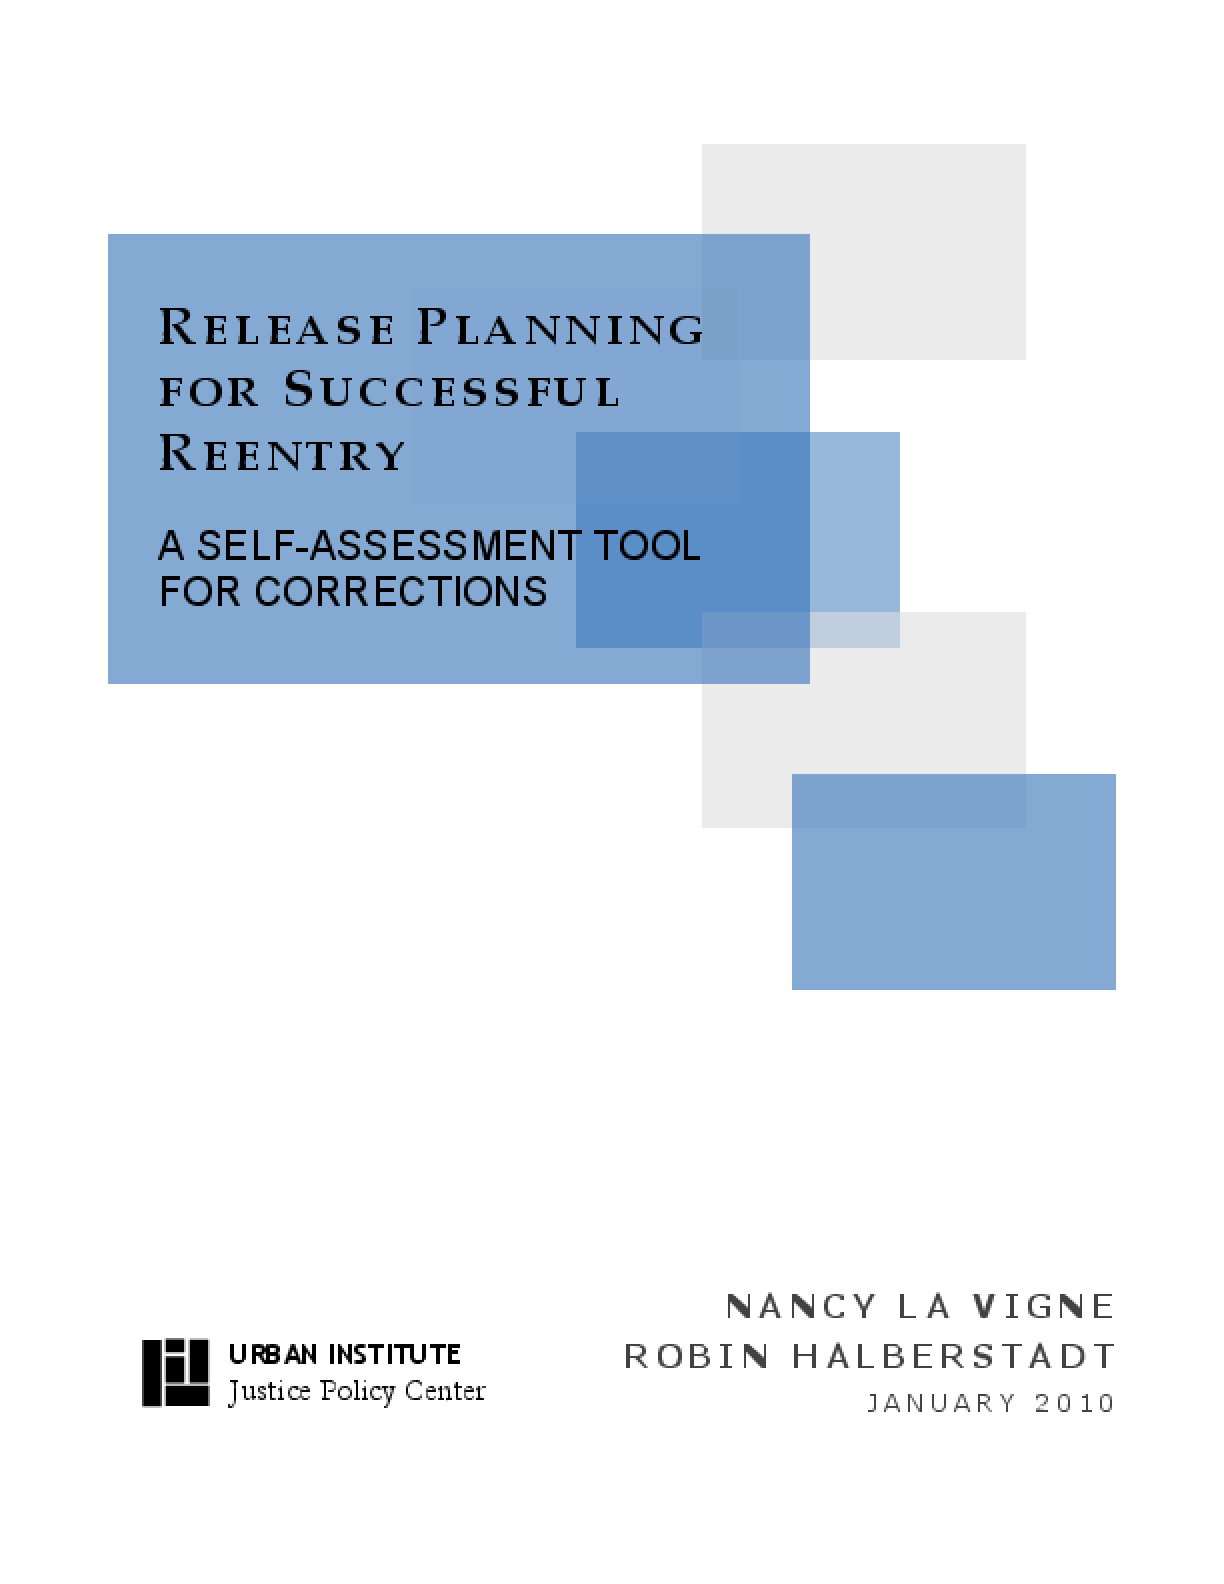 Release Planning for Successful Reentry: A Self-Assessment Tool For Corrections